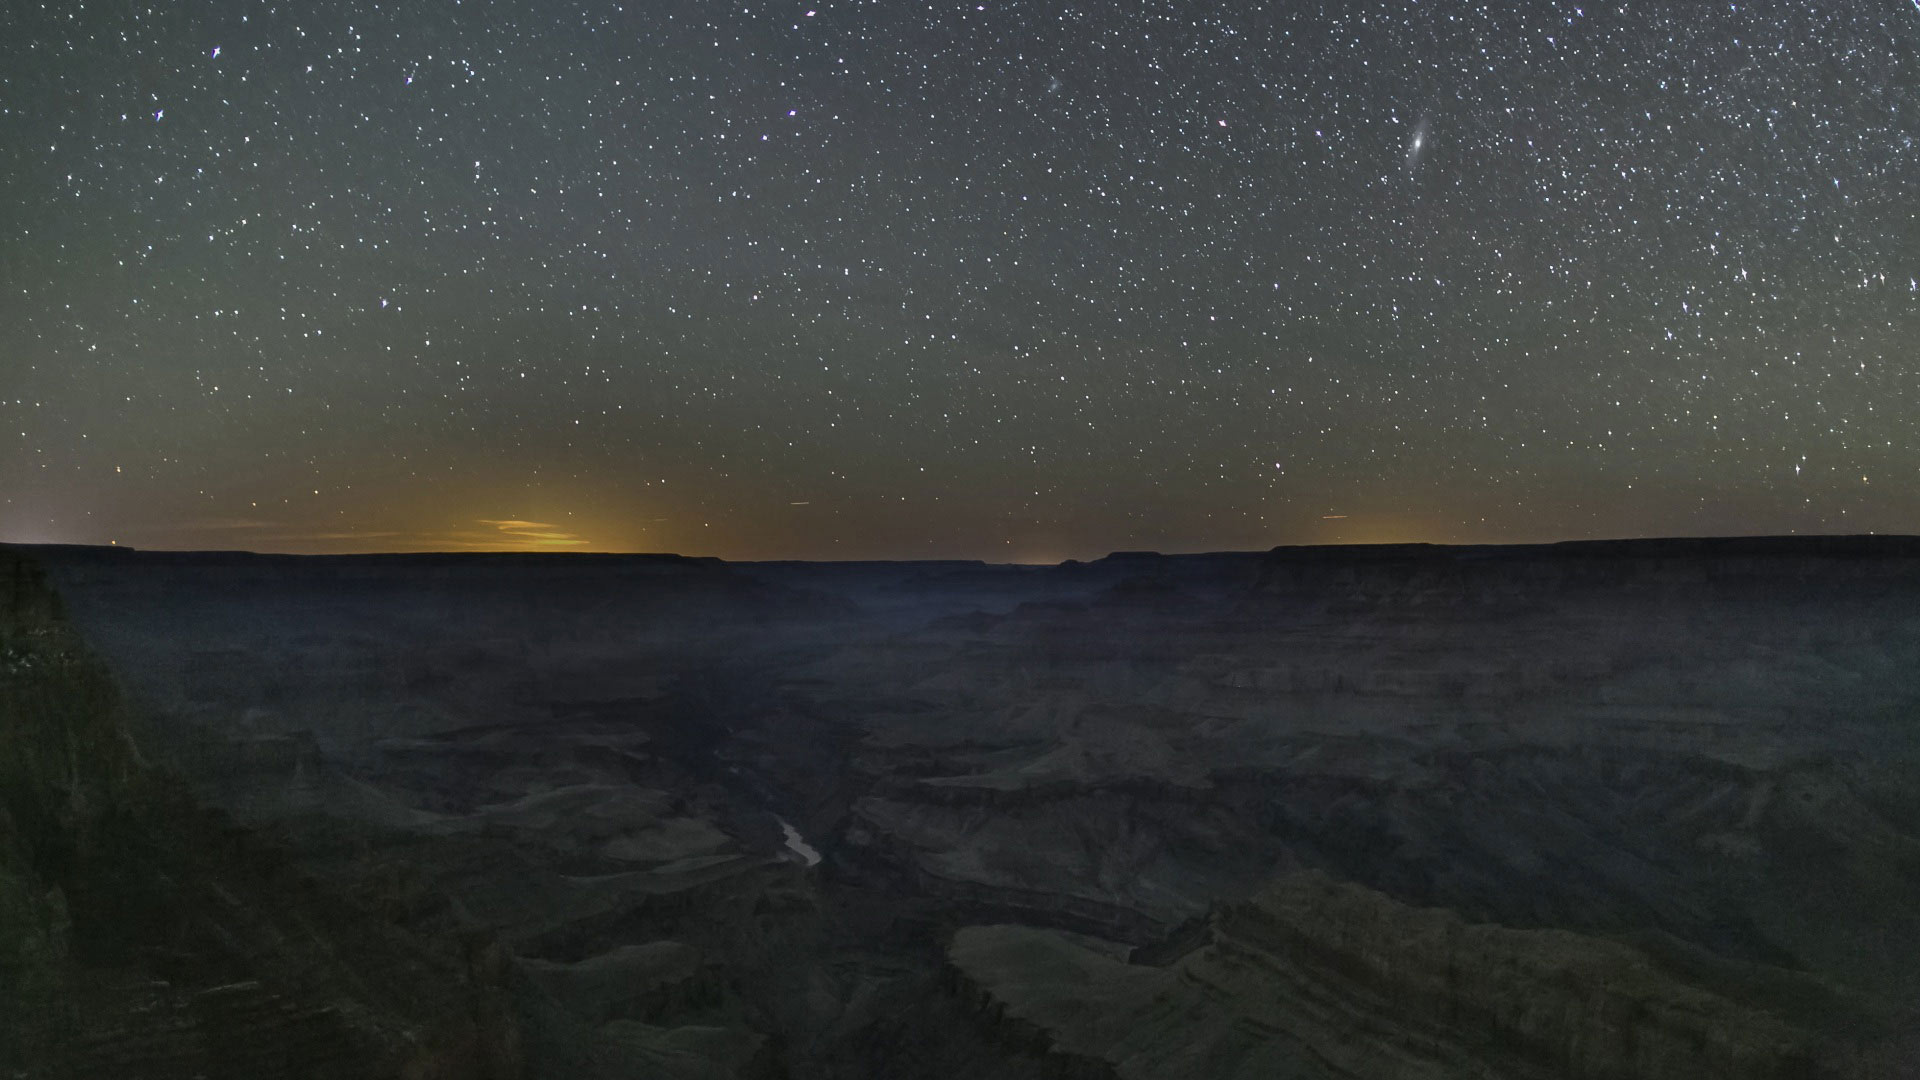 Stars, Night Sky, Grand Canyon hero